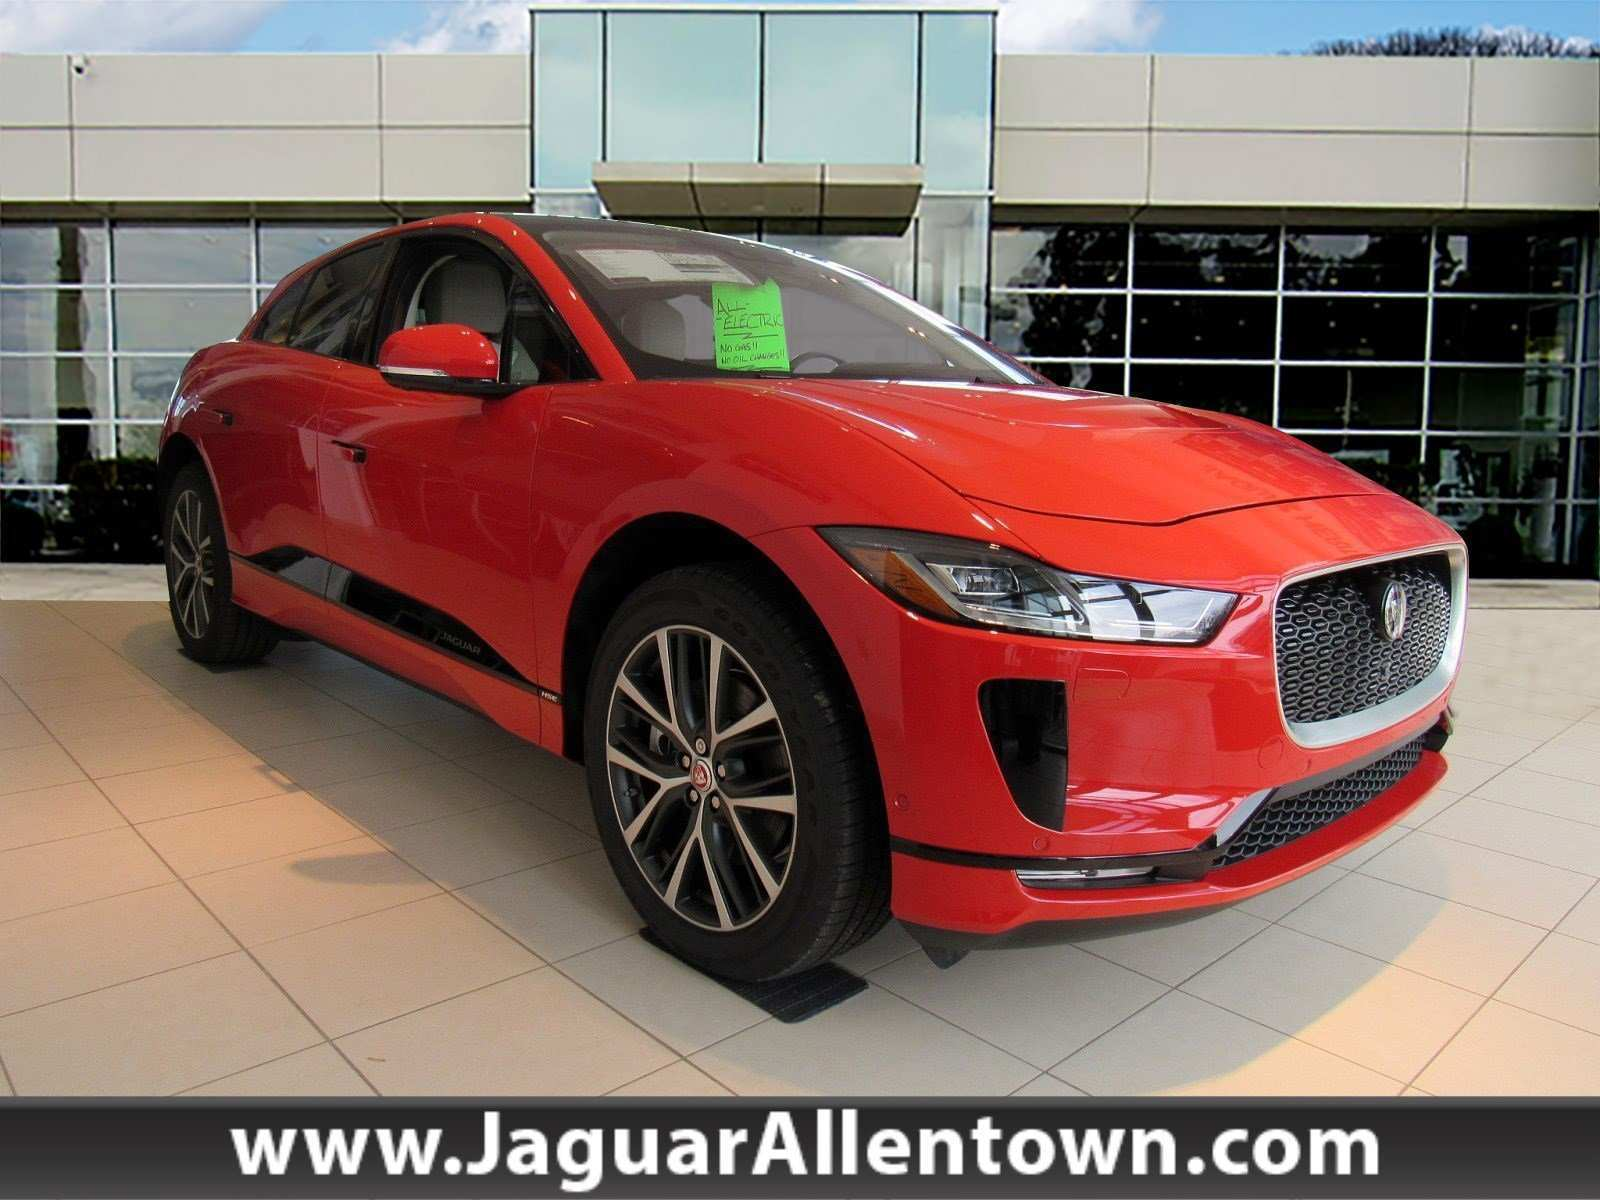 40 Best Review 2019 Jaguar I Pace First Edition Picture with 2019 Jaguar I Pace First Edition